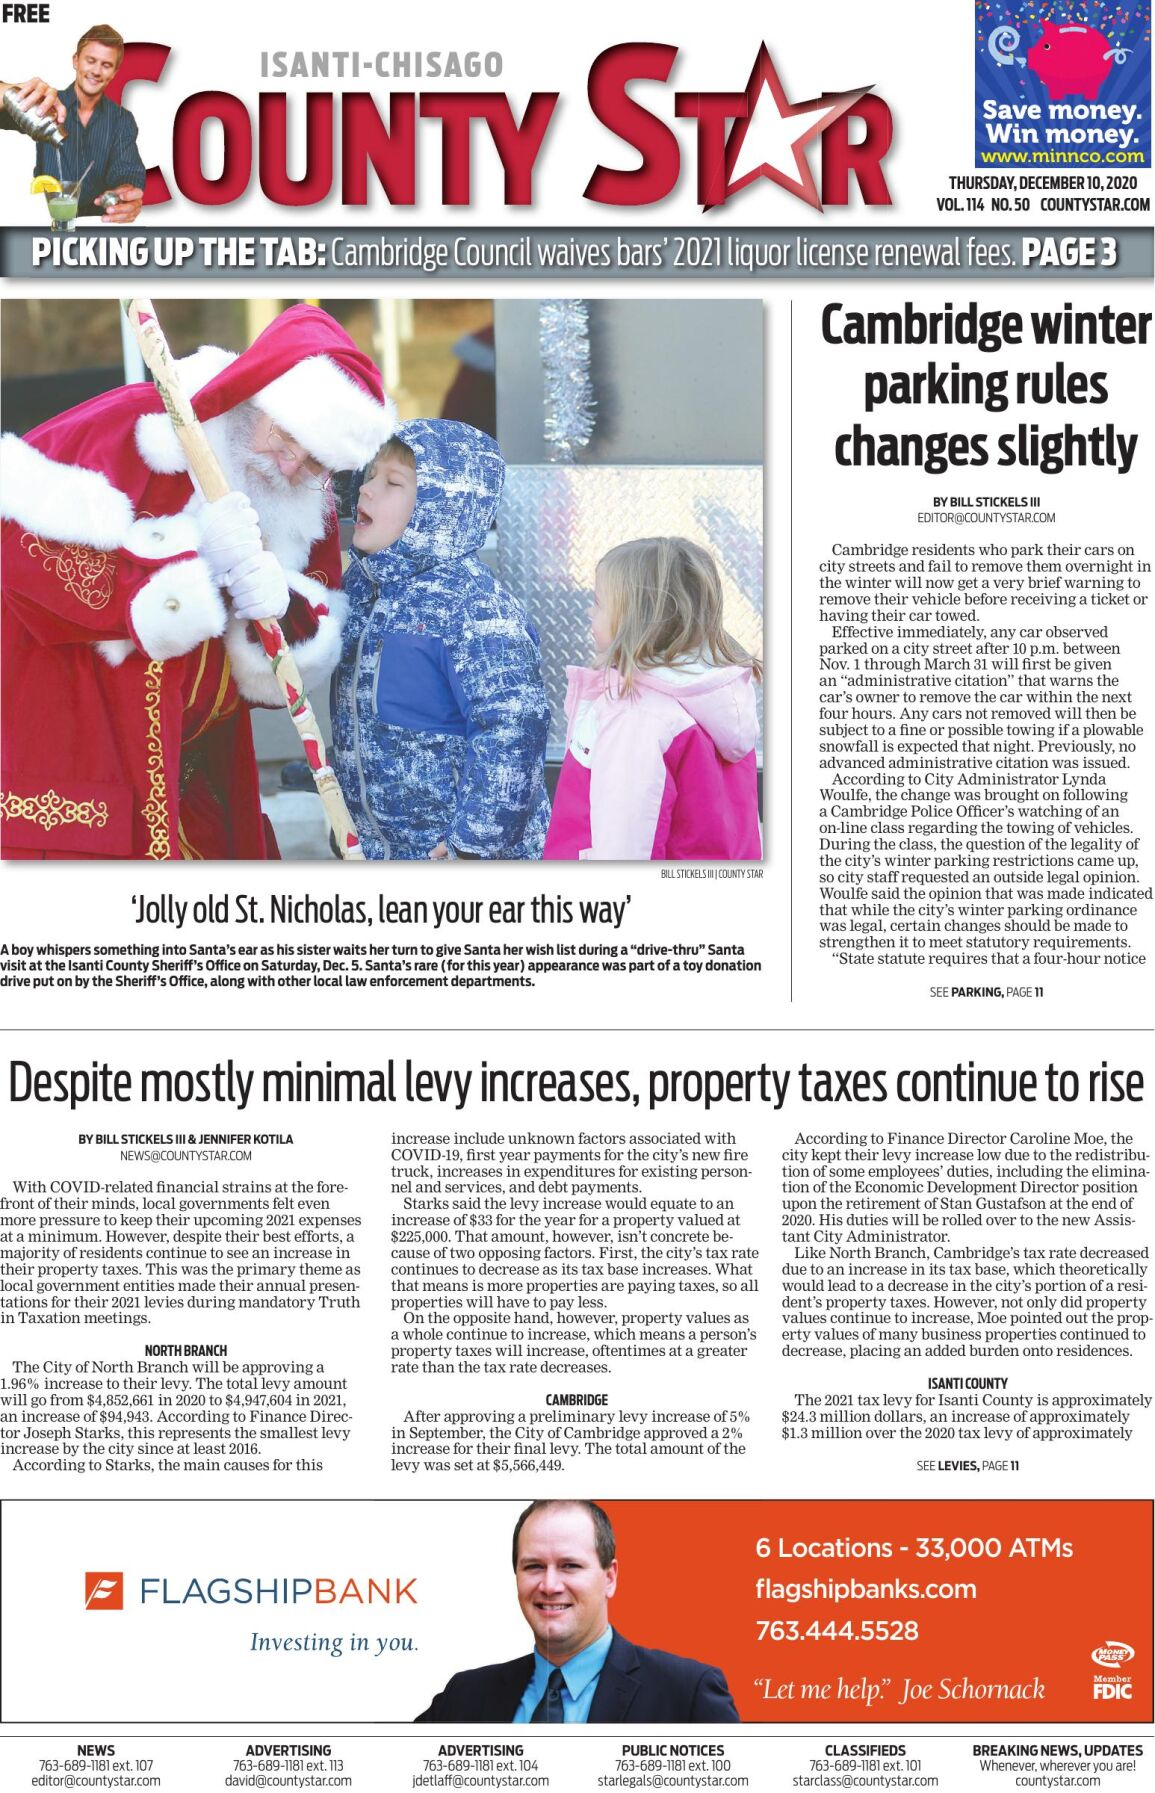 Isanti-Chisago County Star December 10, 2020 e-edition